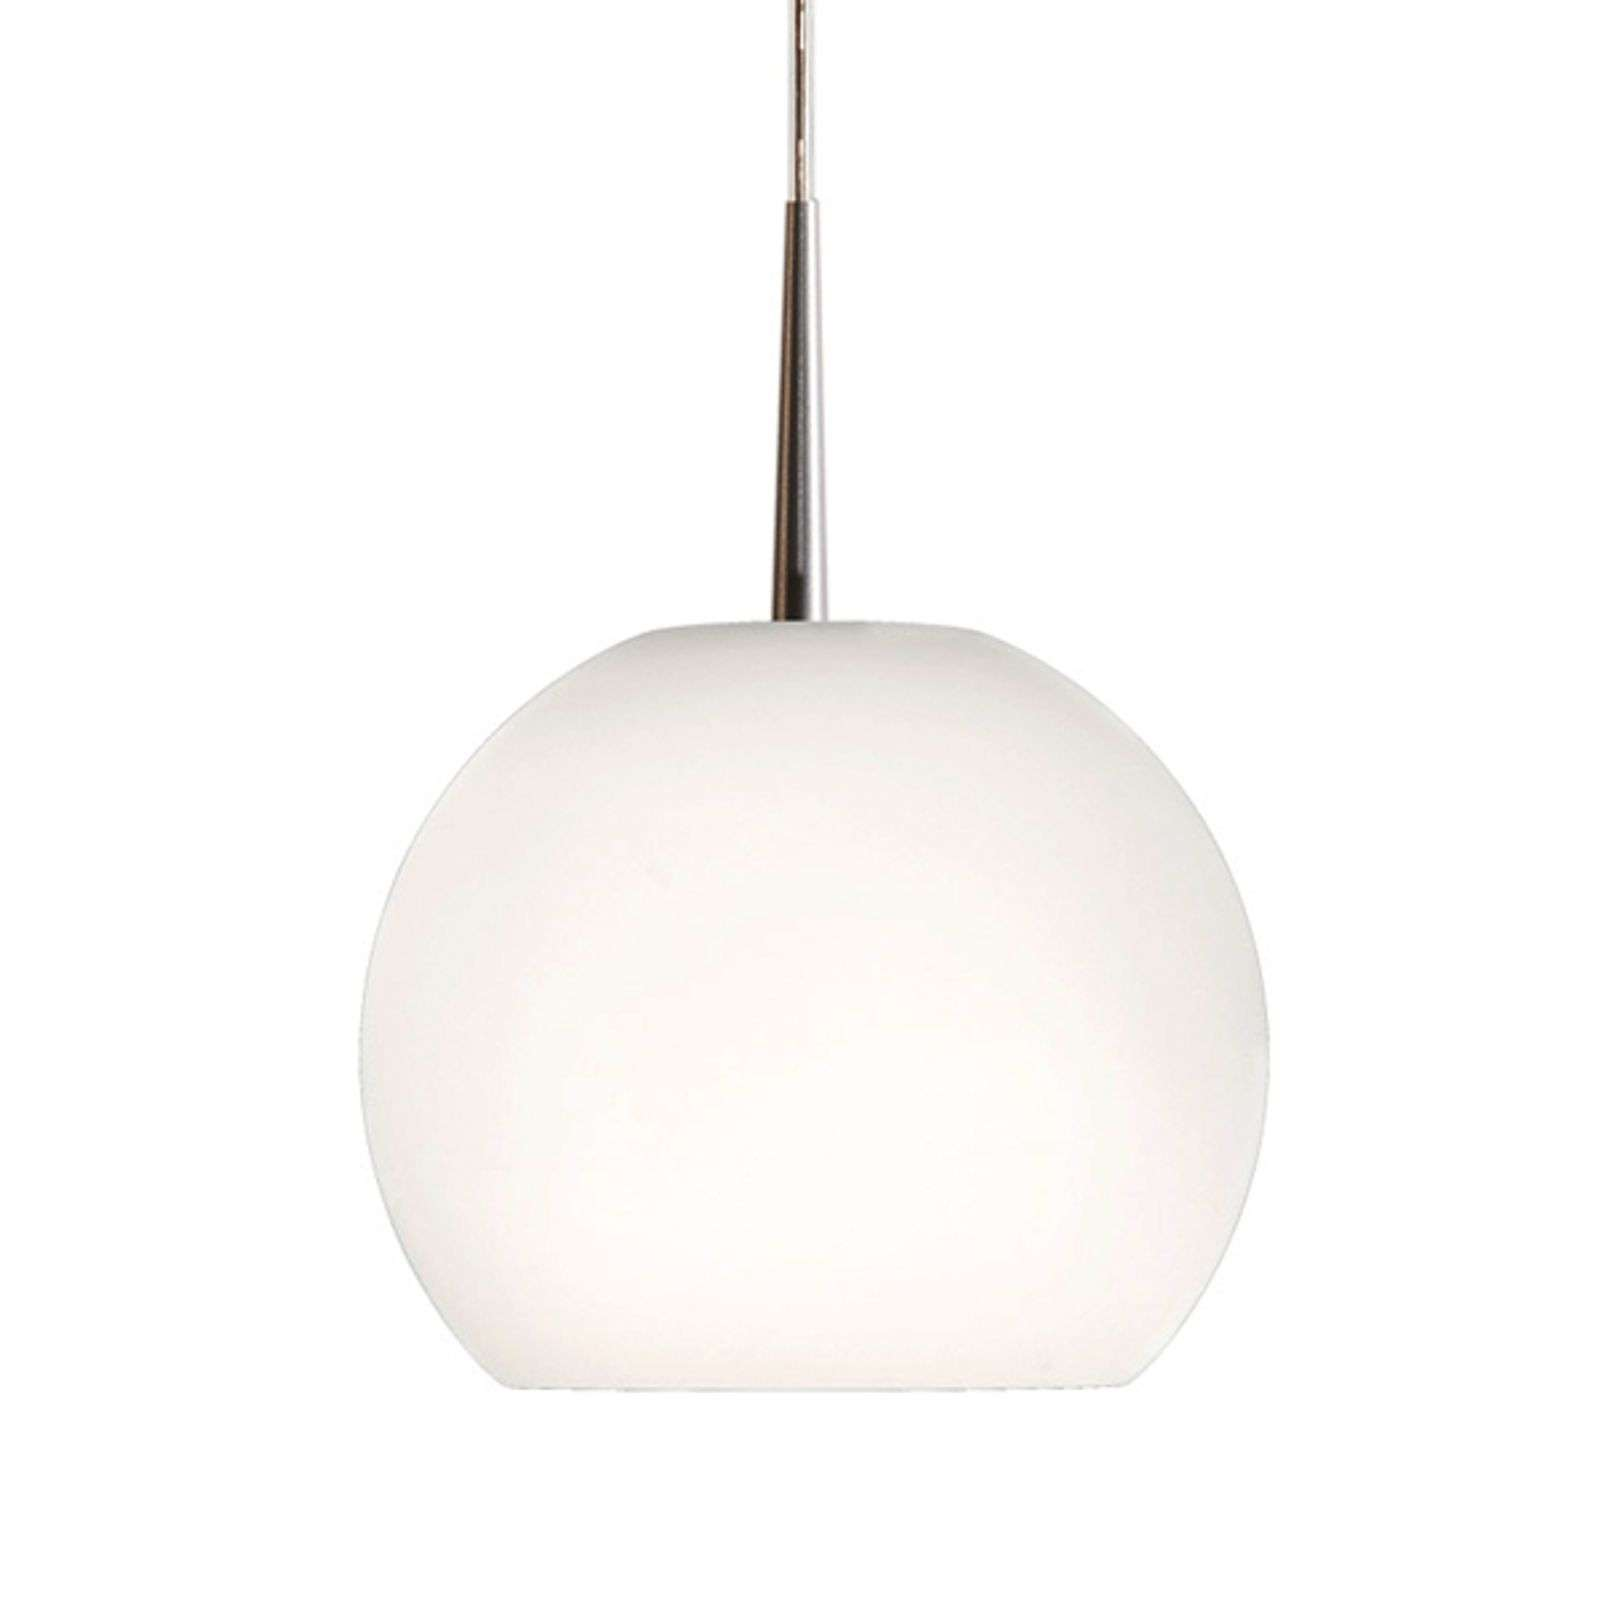 Suspension 1 lampe Ball